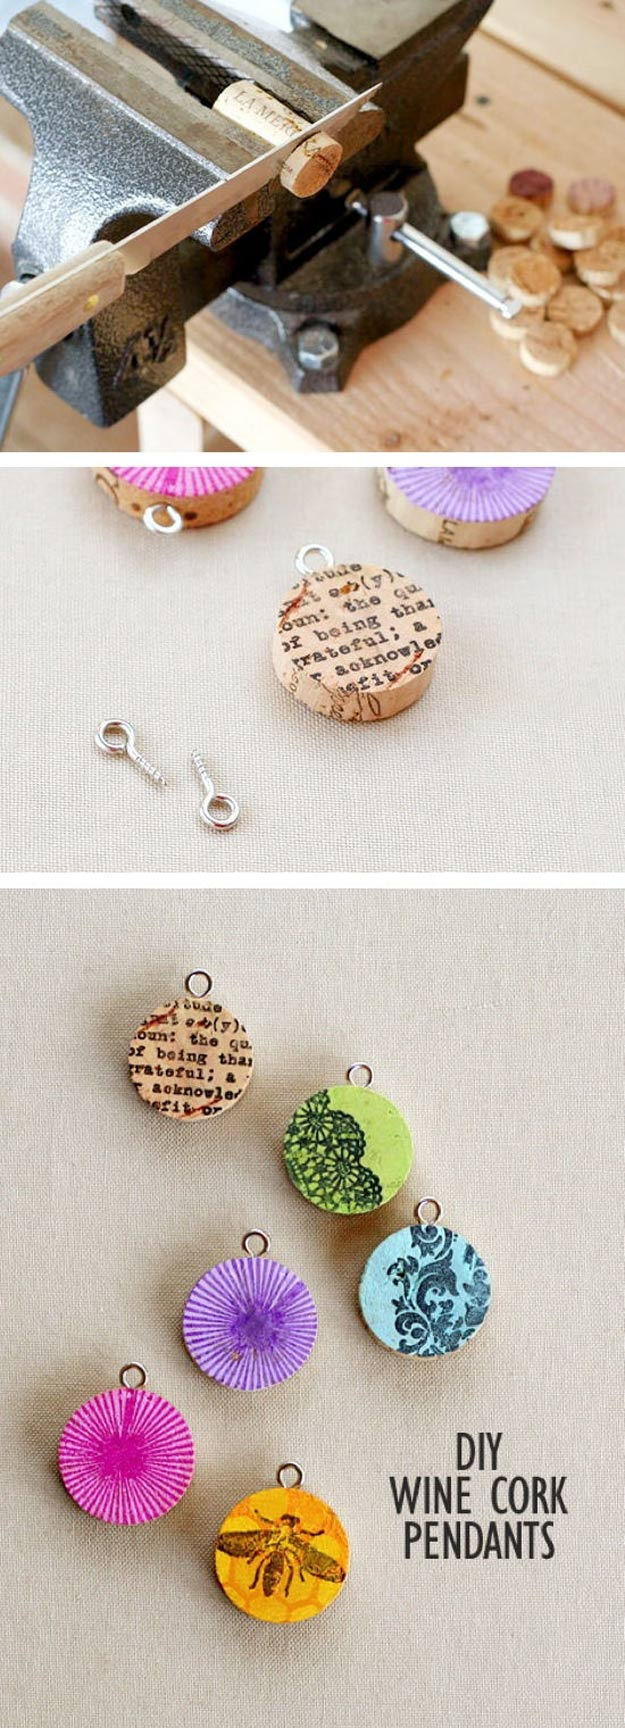 Cool DIY Ideas for Fun and Easy Crafts - DIY Wine Cork Crafts - Colorful Handmade Pendant is Fun DIY Jewelry Idea - DIY Moon Pendant for Easy DIY Lighting in Teens Rooms - Dip Dyed String Wall Hanging - DIY Mini Easel Makes Fun DIY Room Decor Idea - Awesome Pinterest DIYs that Are Not Impossible To Make - Creative Do It Yourself Craft Projects for Adults, Teens and Tweens #diyteens #teencrafts #funcrafts #fundiy #diyideas